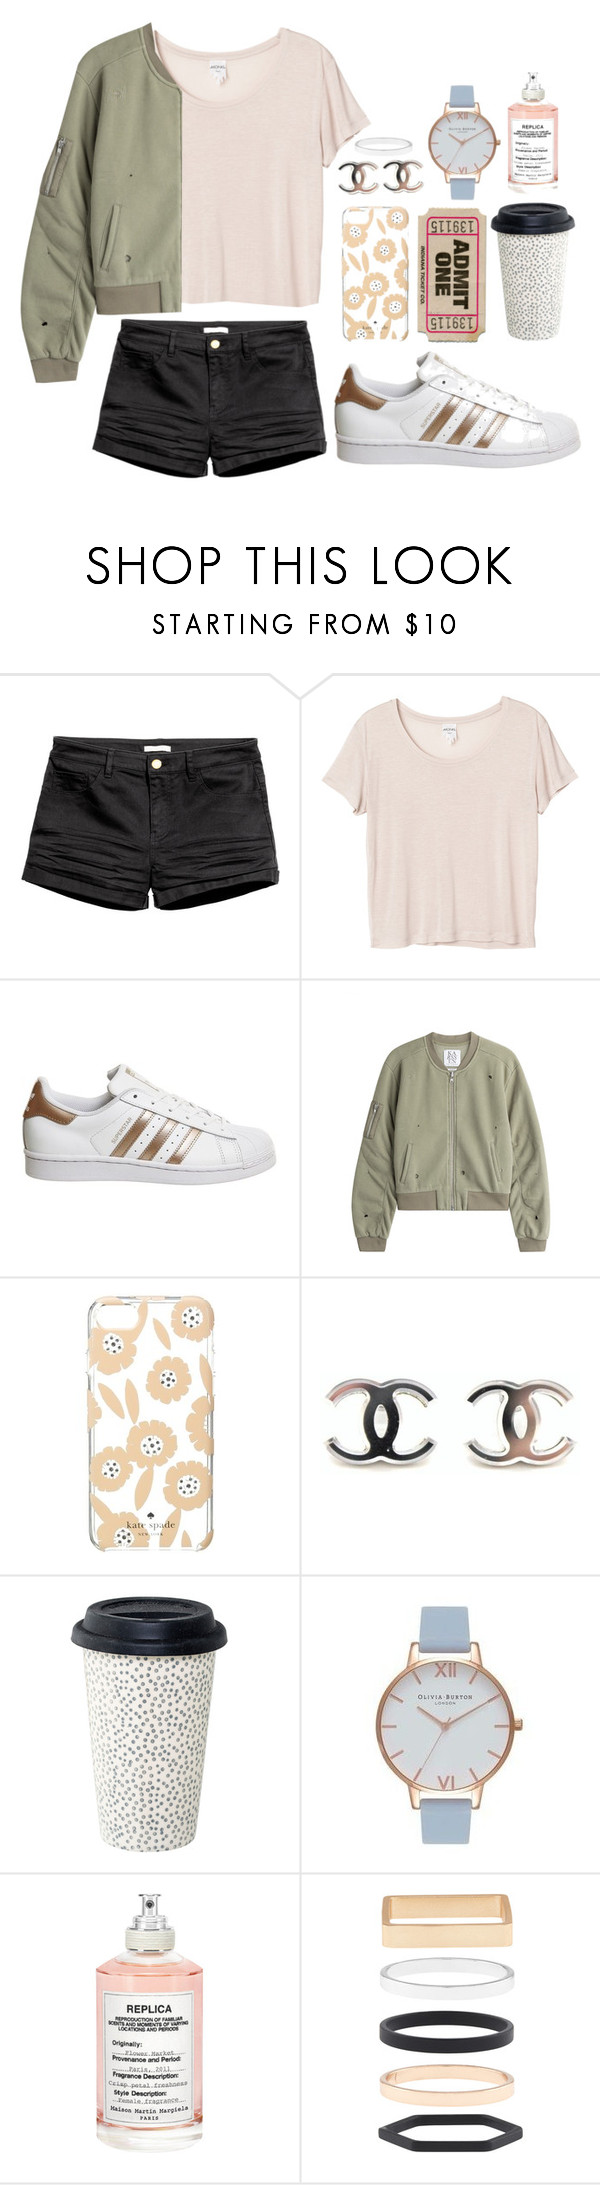 """Concert"" by emily-2024099 ❤ liked on Polyvore featuring Monki, adidas, Zoe Karssen, Kate Spade, Olivia Burton, Maison Margiela, Accessorize and didthisalready"